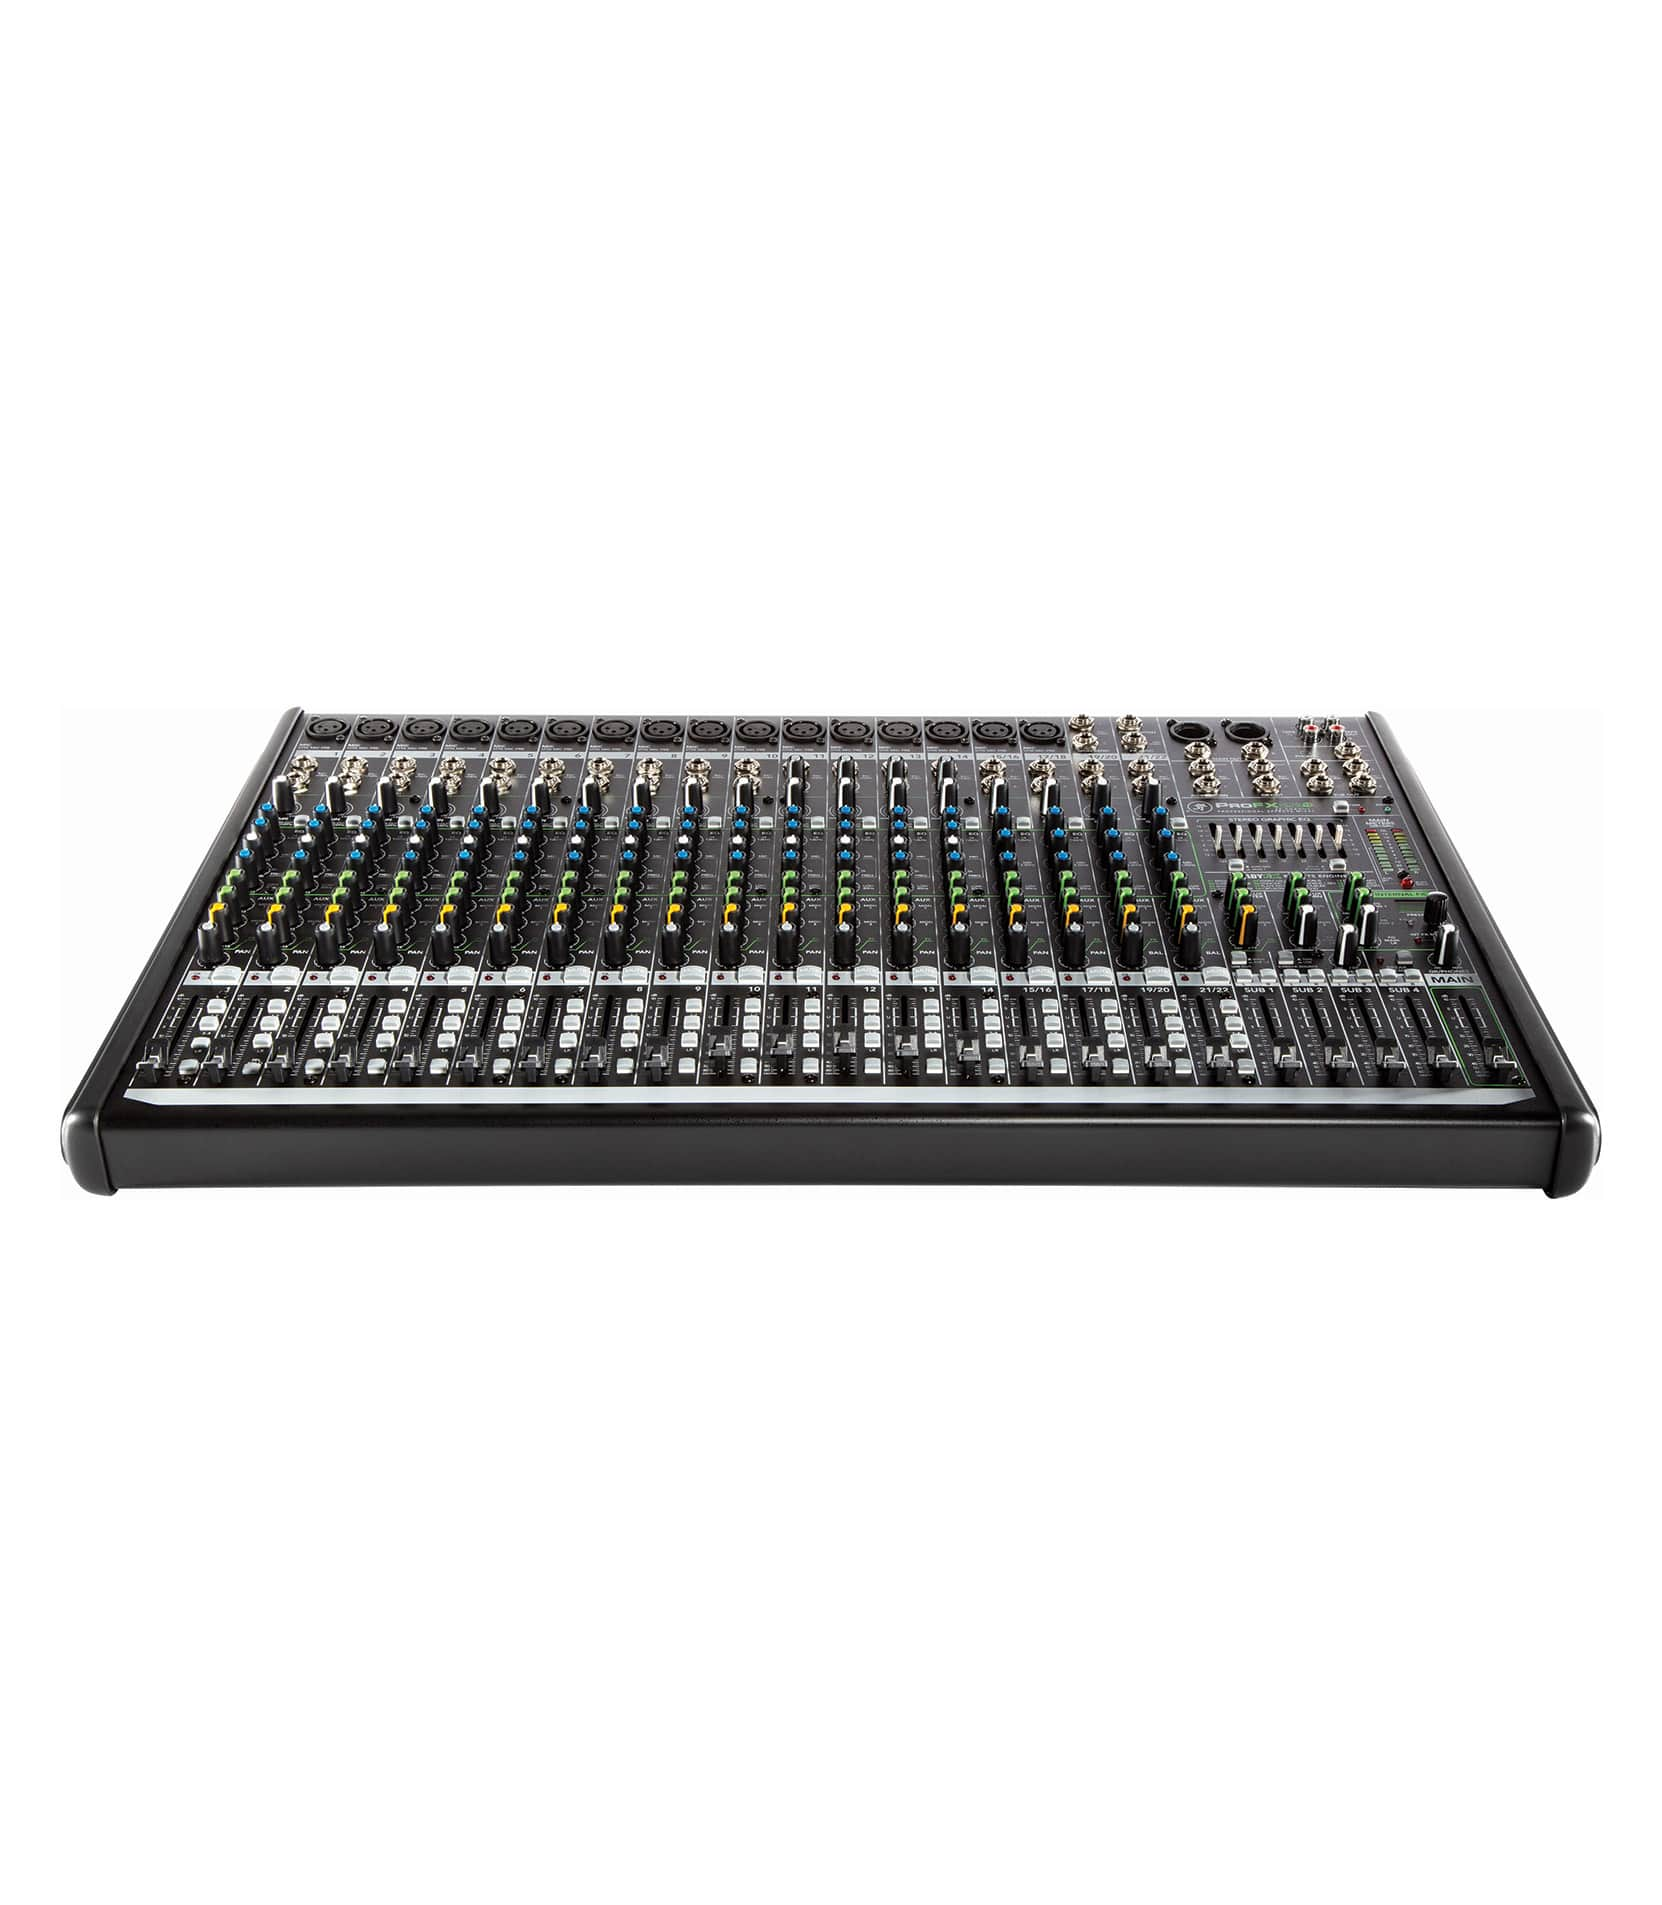 Buy Mackie Mixers ProFX22v2 UK 22 channel 4 Bus Effects